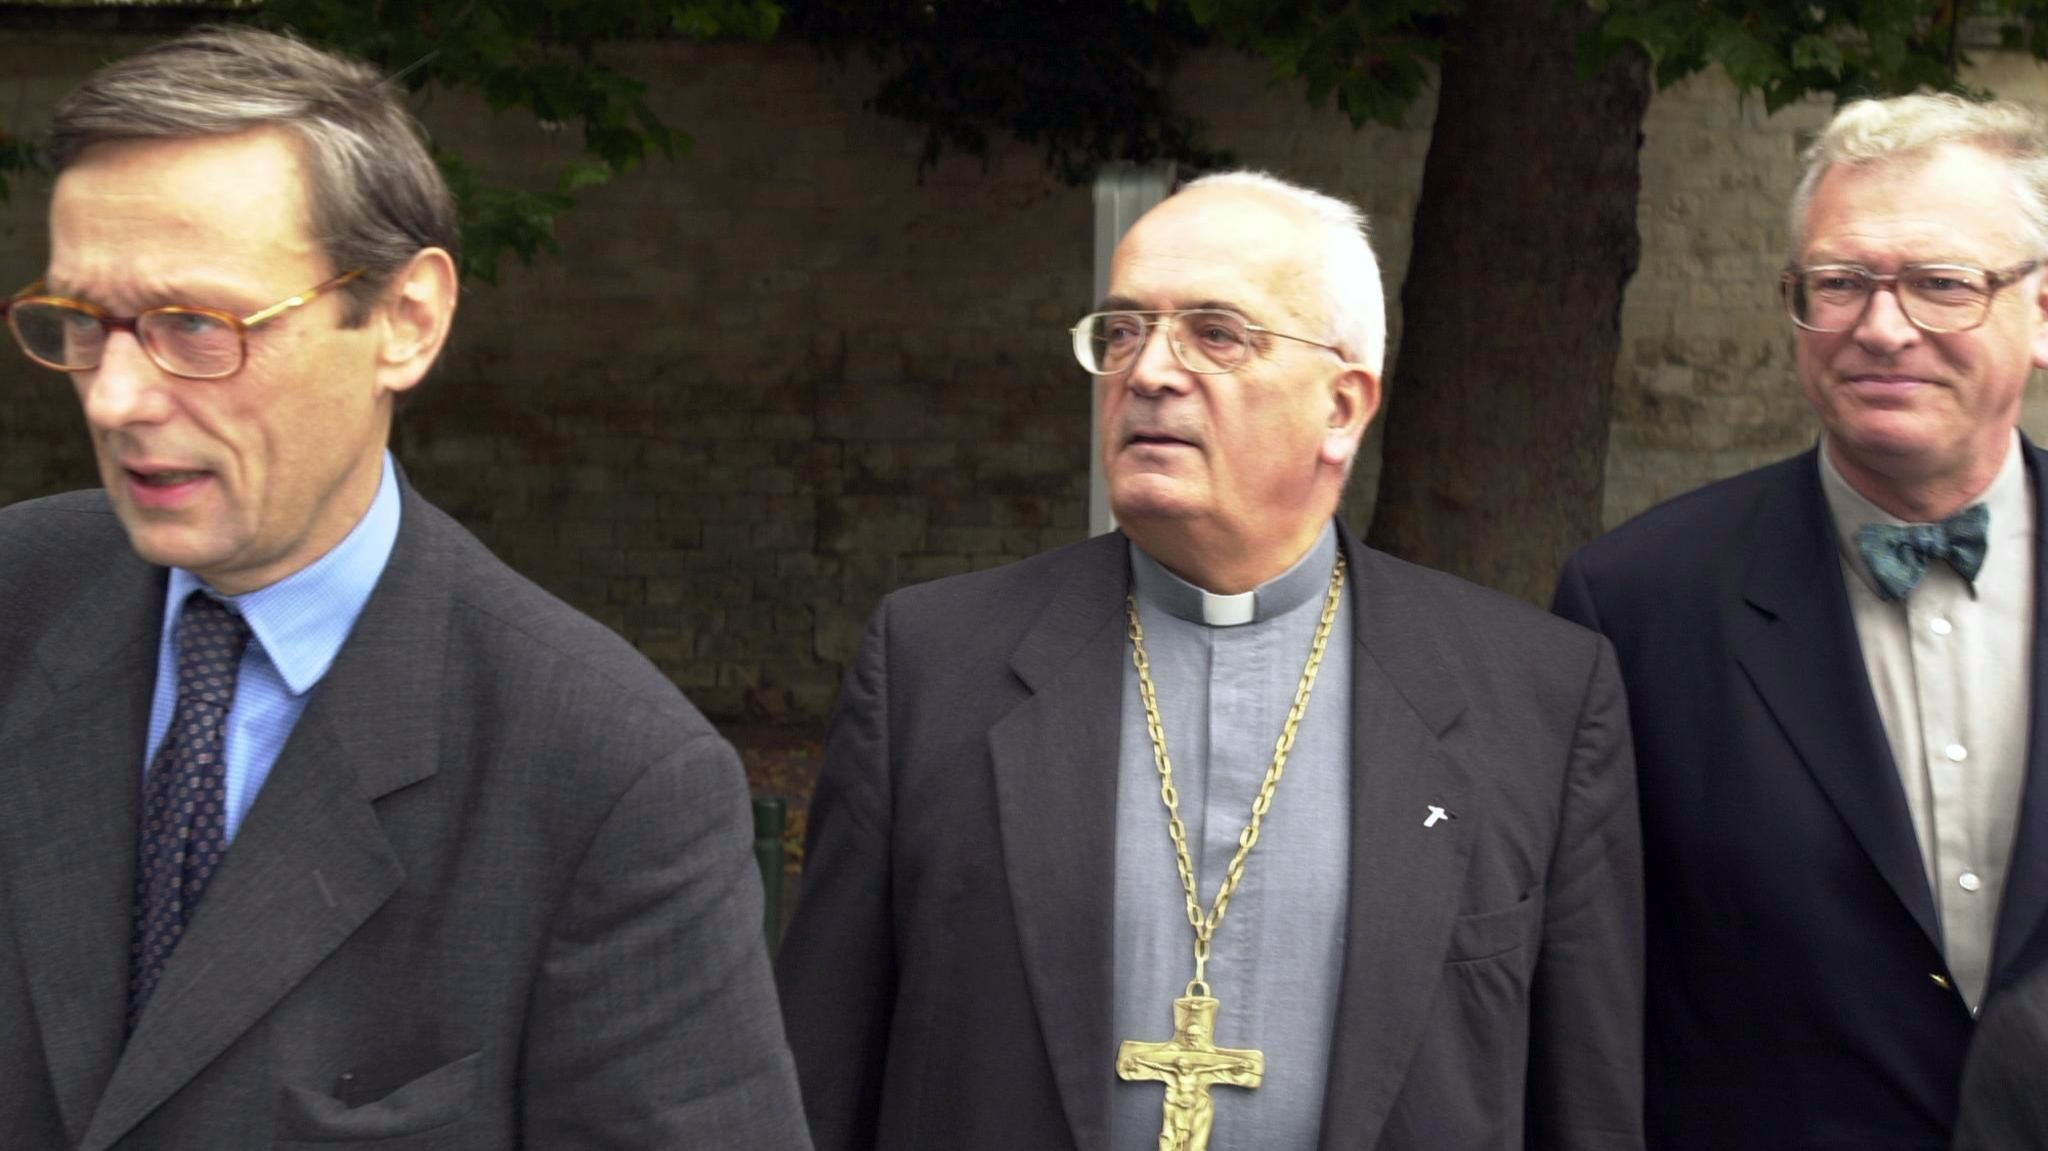 Bishop Pierre Pican, center, flanked by lawyers outside the Caen court house in France in 2000.